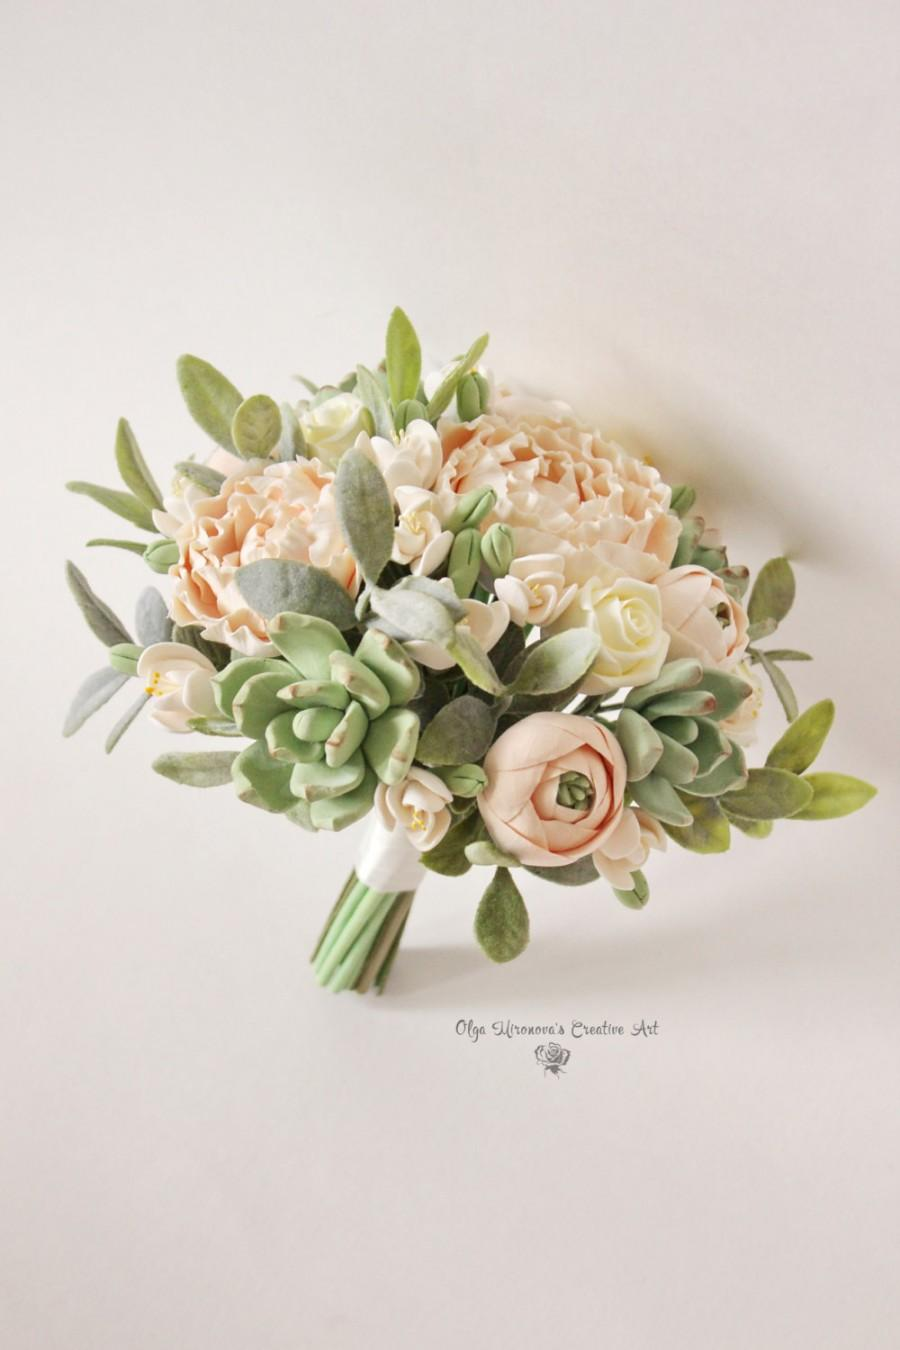 Alternative wedding bouquet keepsake wedding bouquet peach blush alternative wedding bouquet keepsake wedding bouquet peach blush peonies green succulents bridal bouquet clay flowers weddingl bouquet izmirmasajfo Images